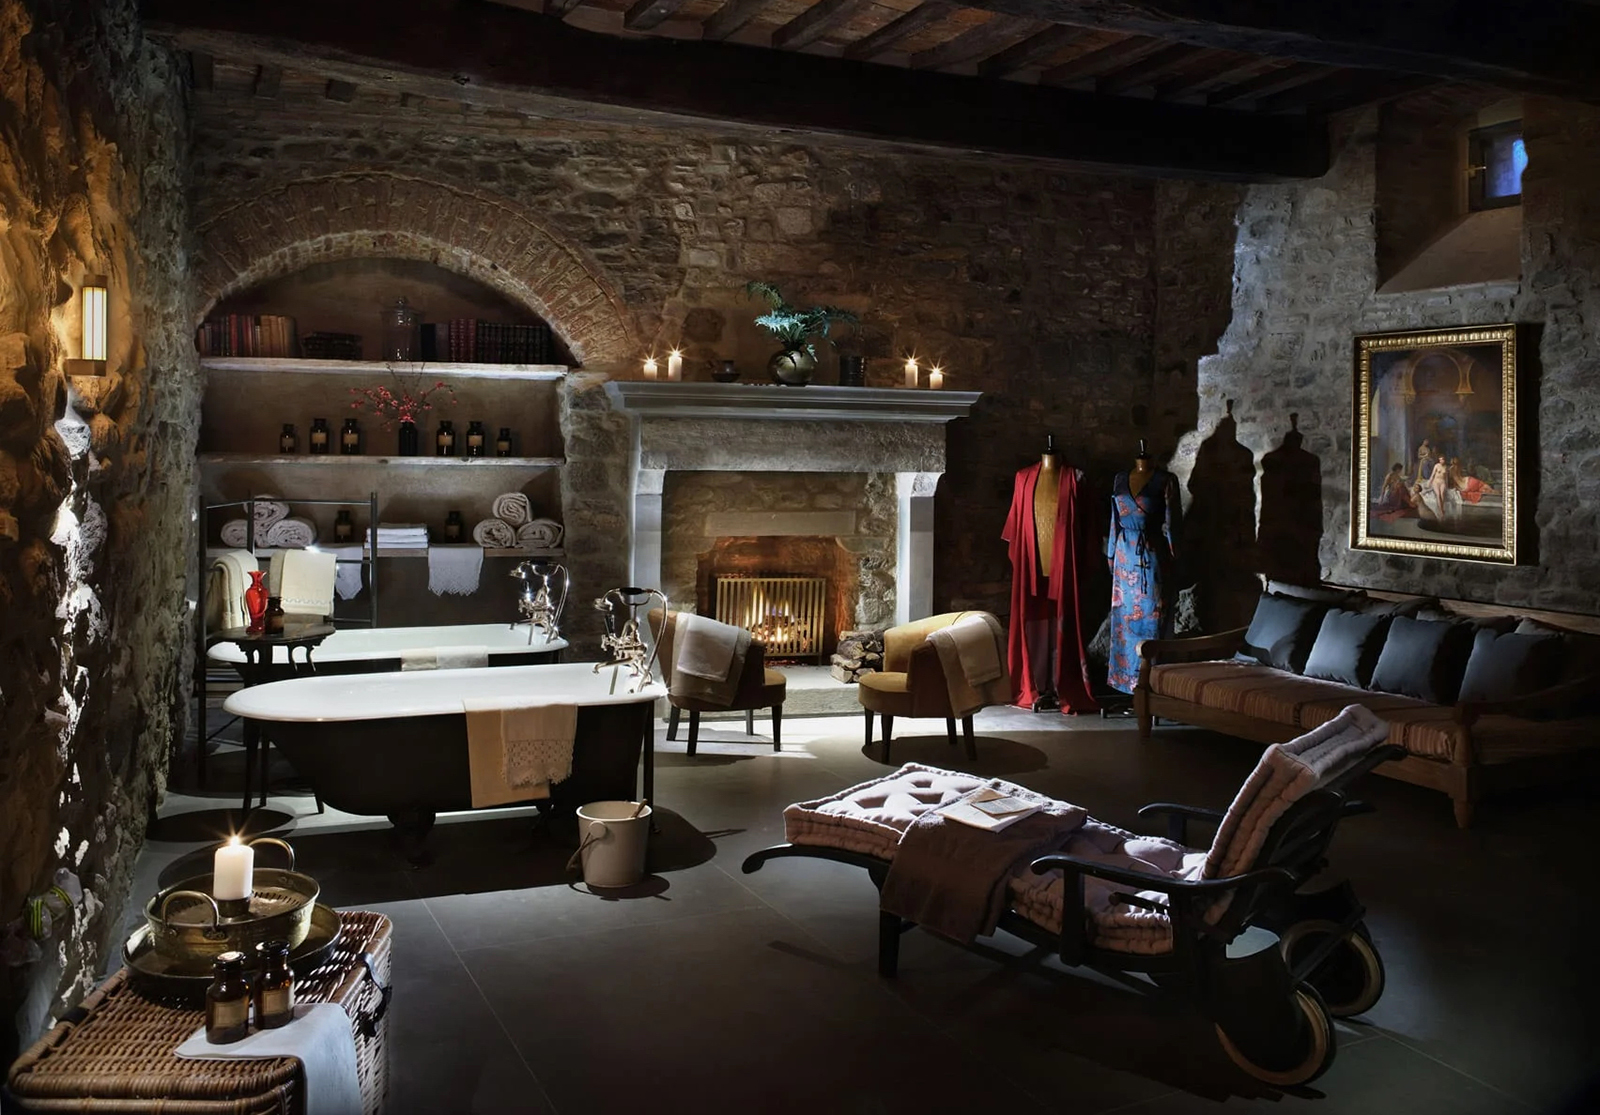 One of the thirty suites inside the castle's upper levels